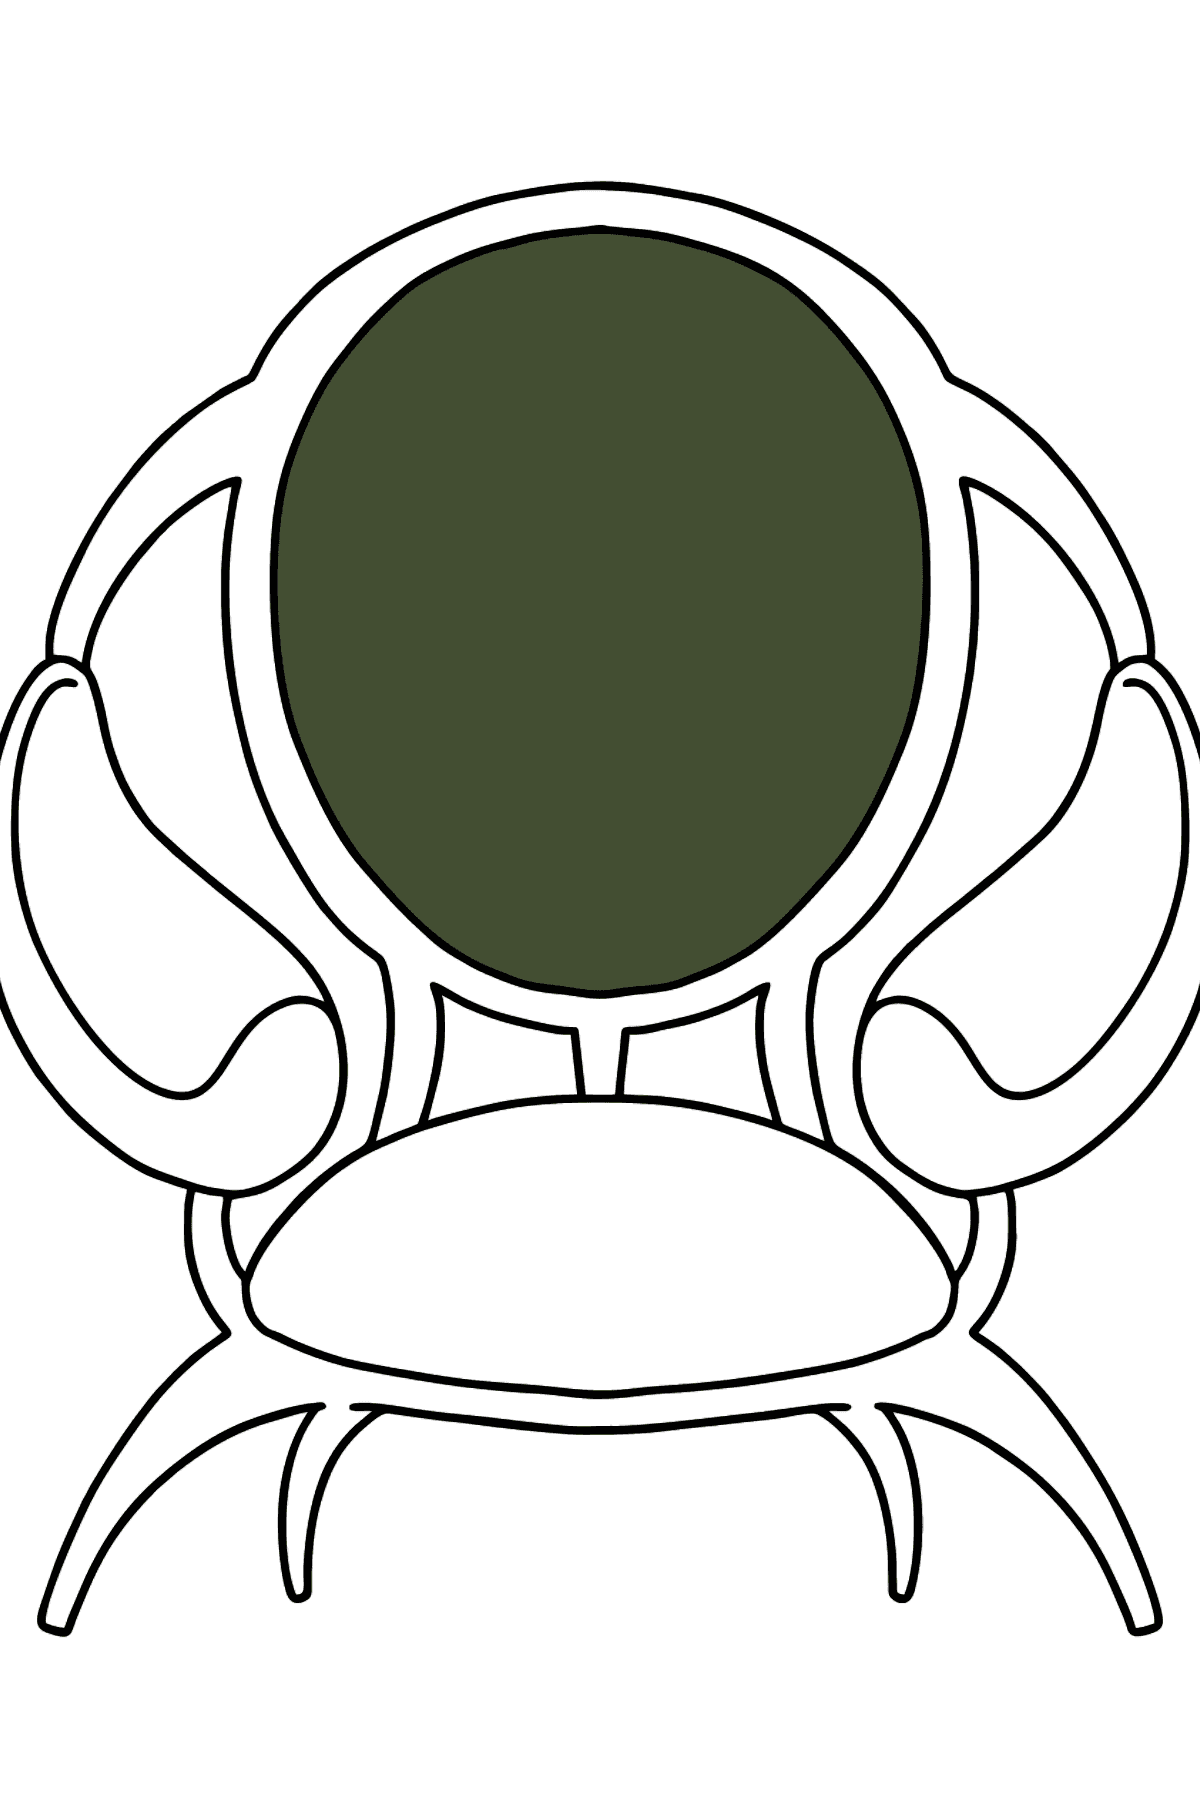 Soft Chair coloring page - Coloring Pages for Kids